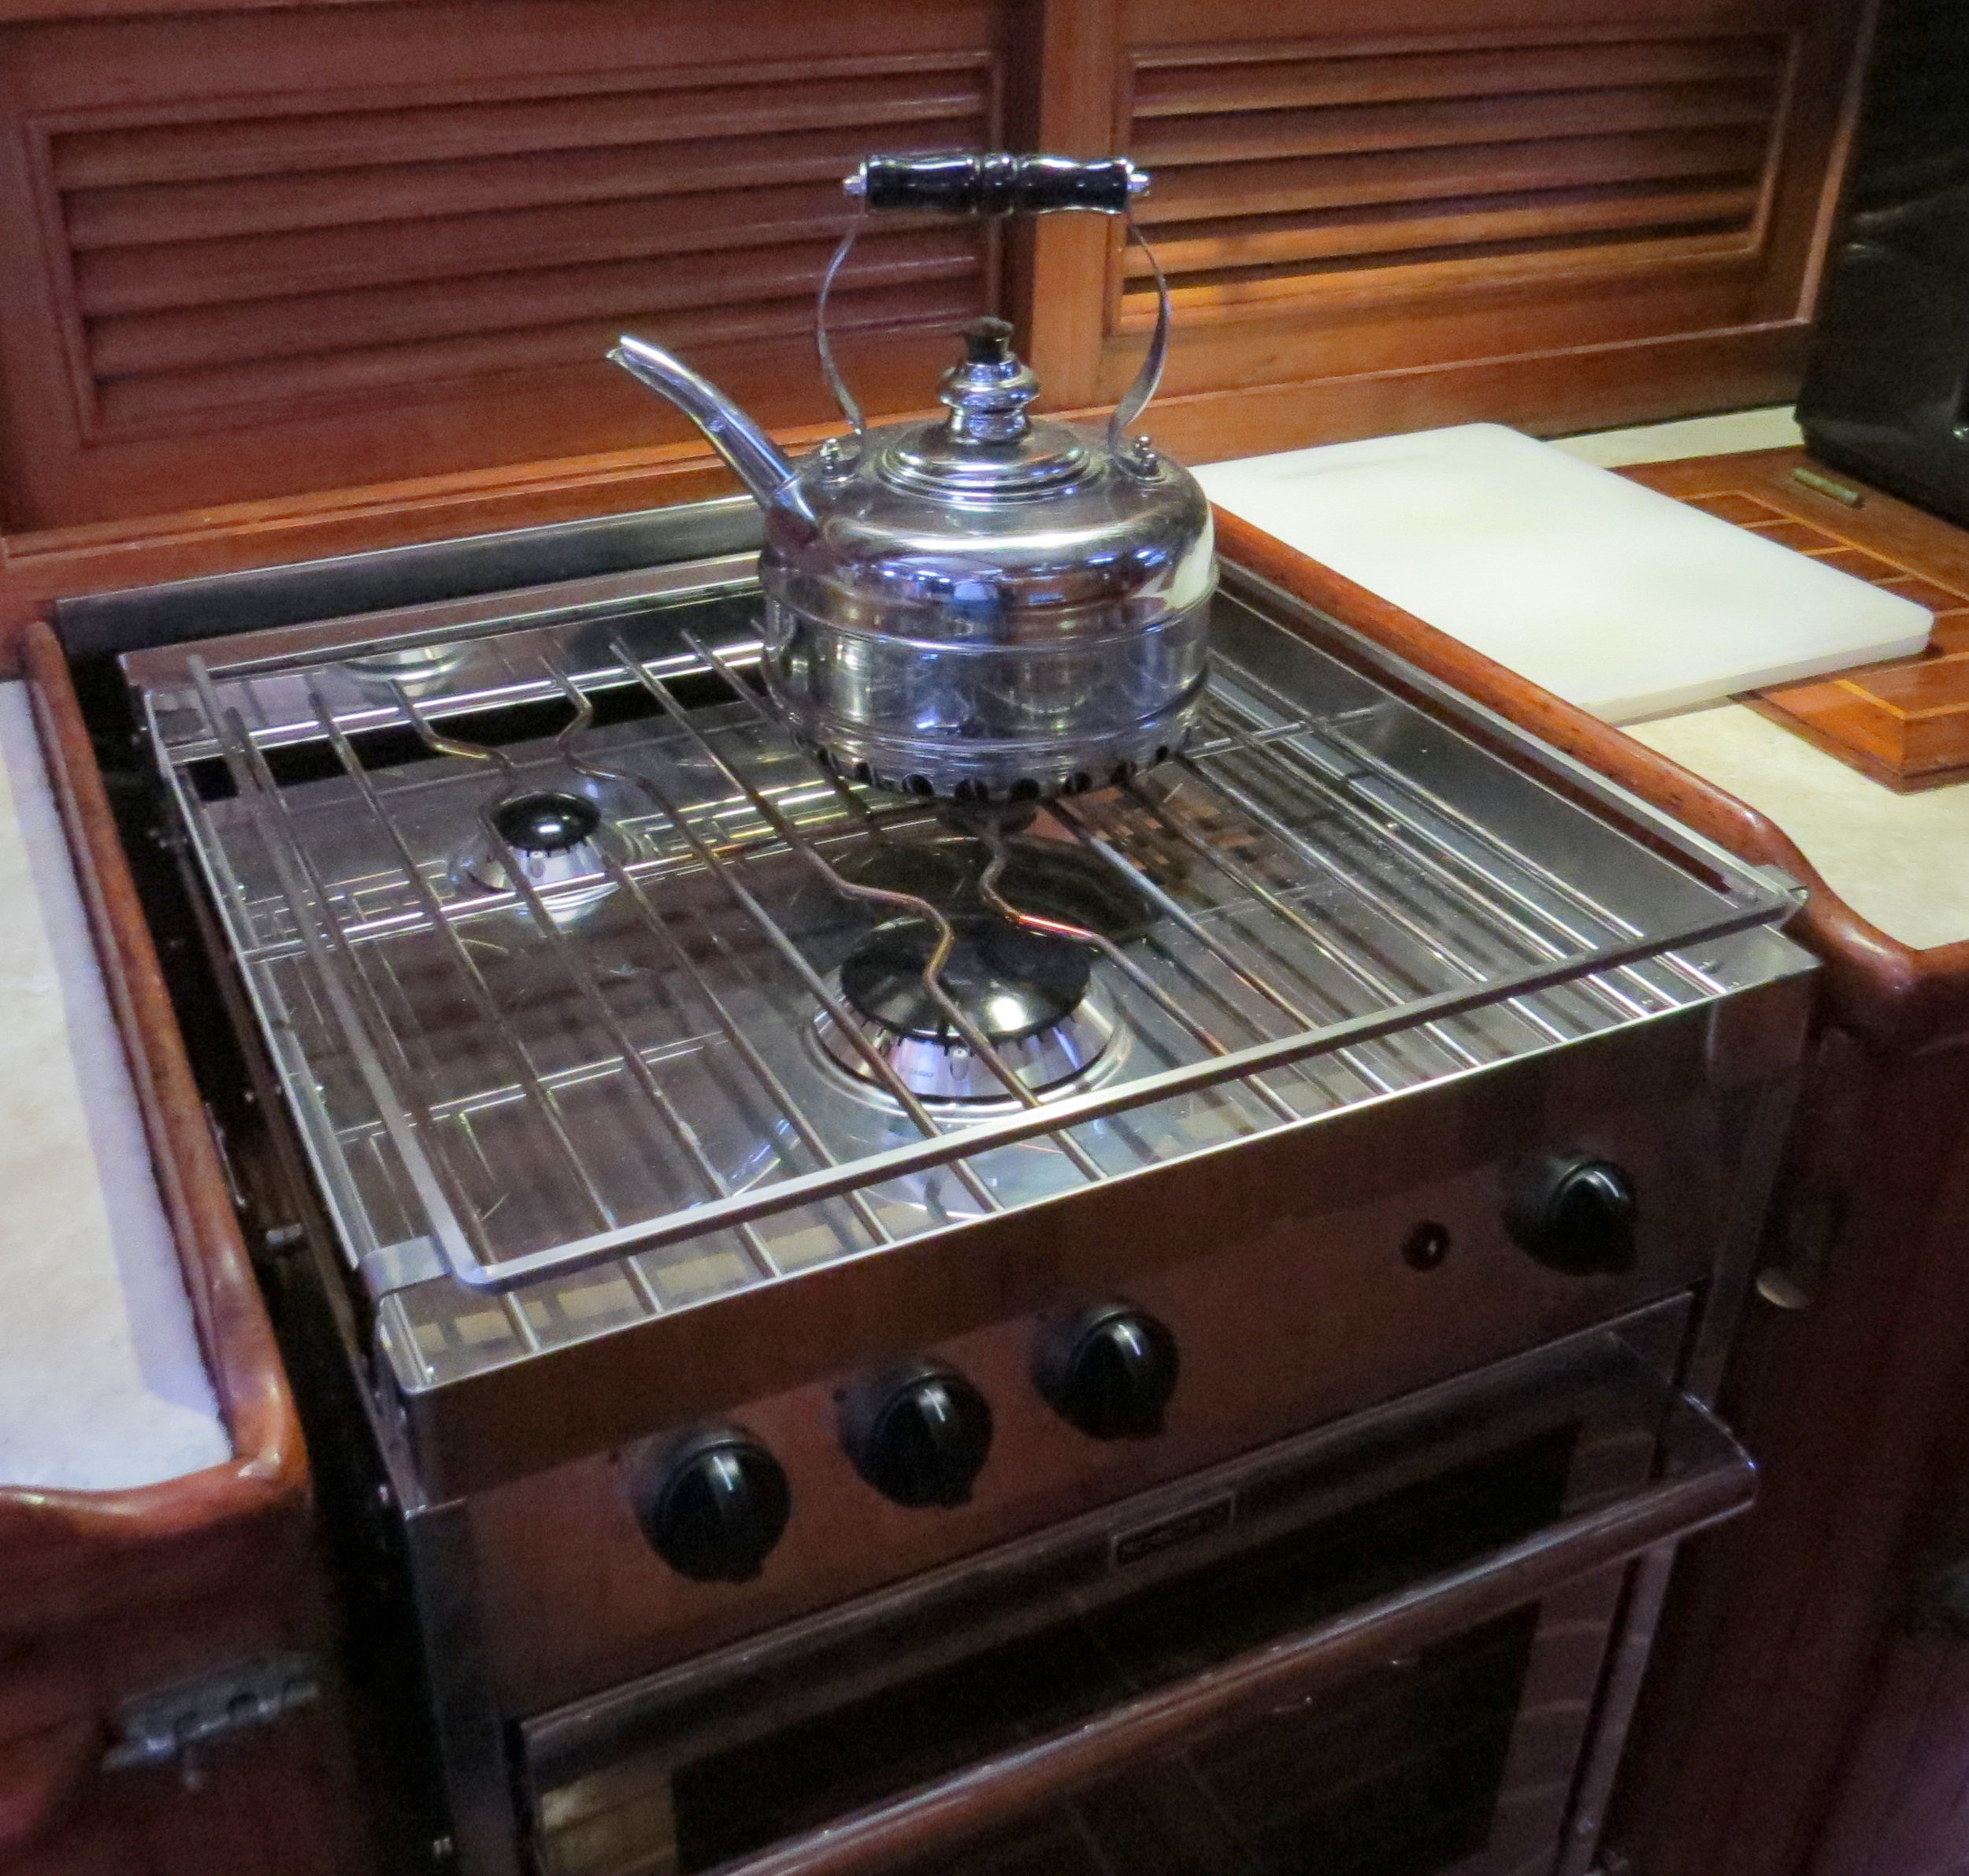 New Force 10 3-burner stove/oven